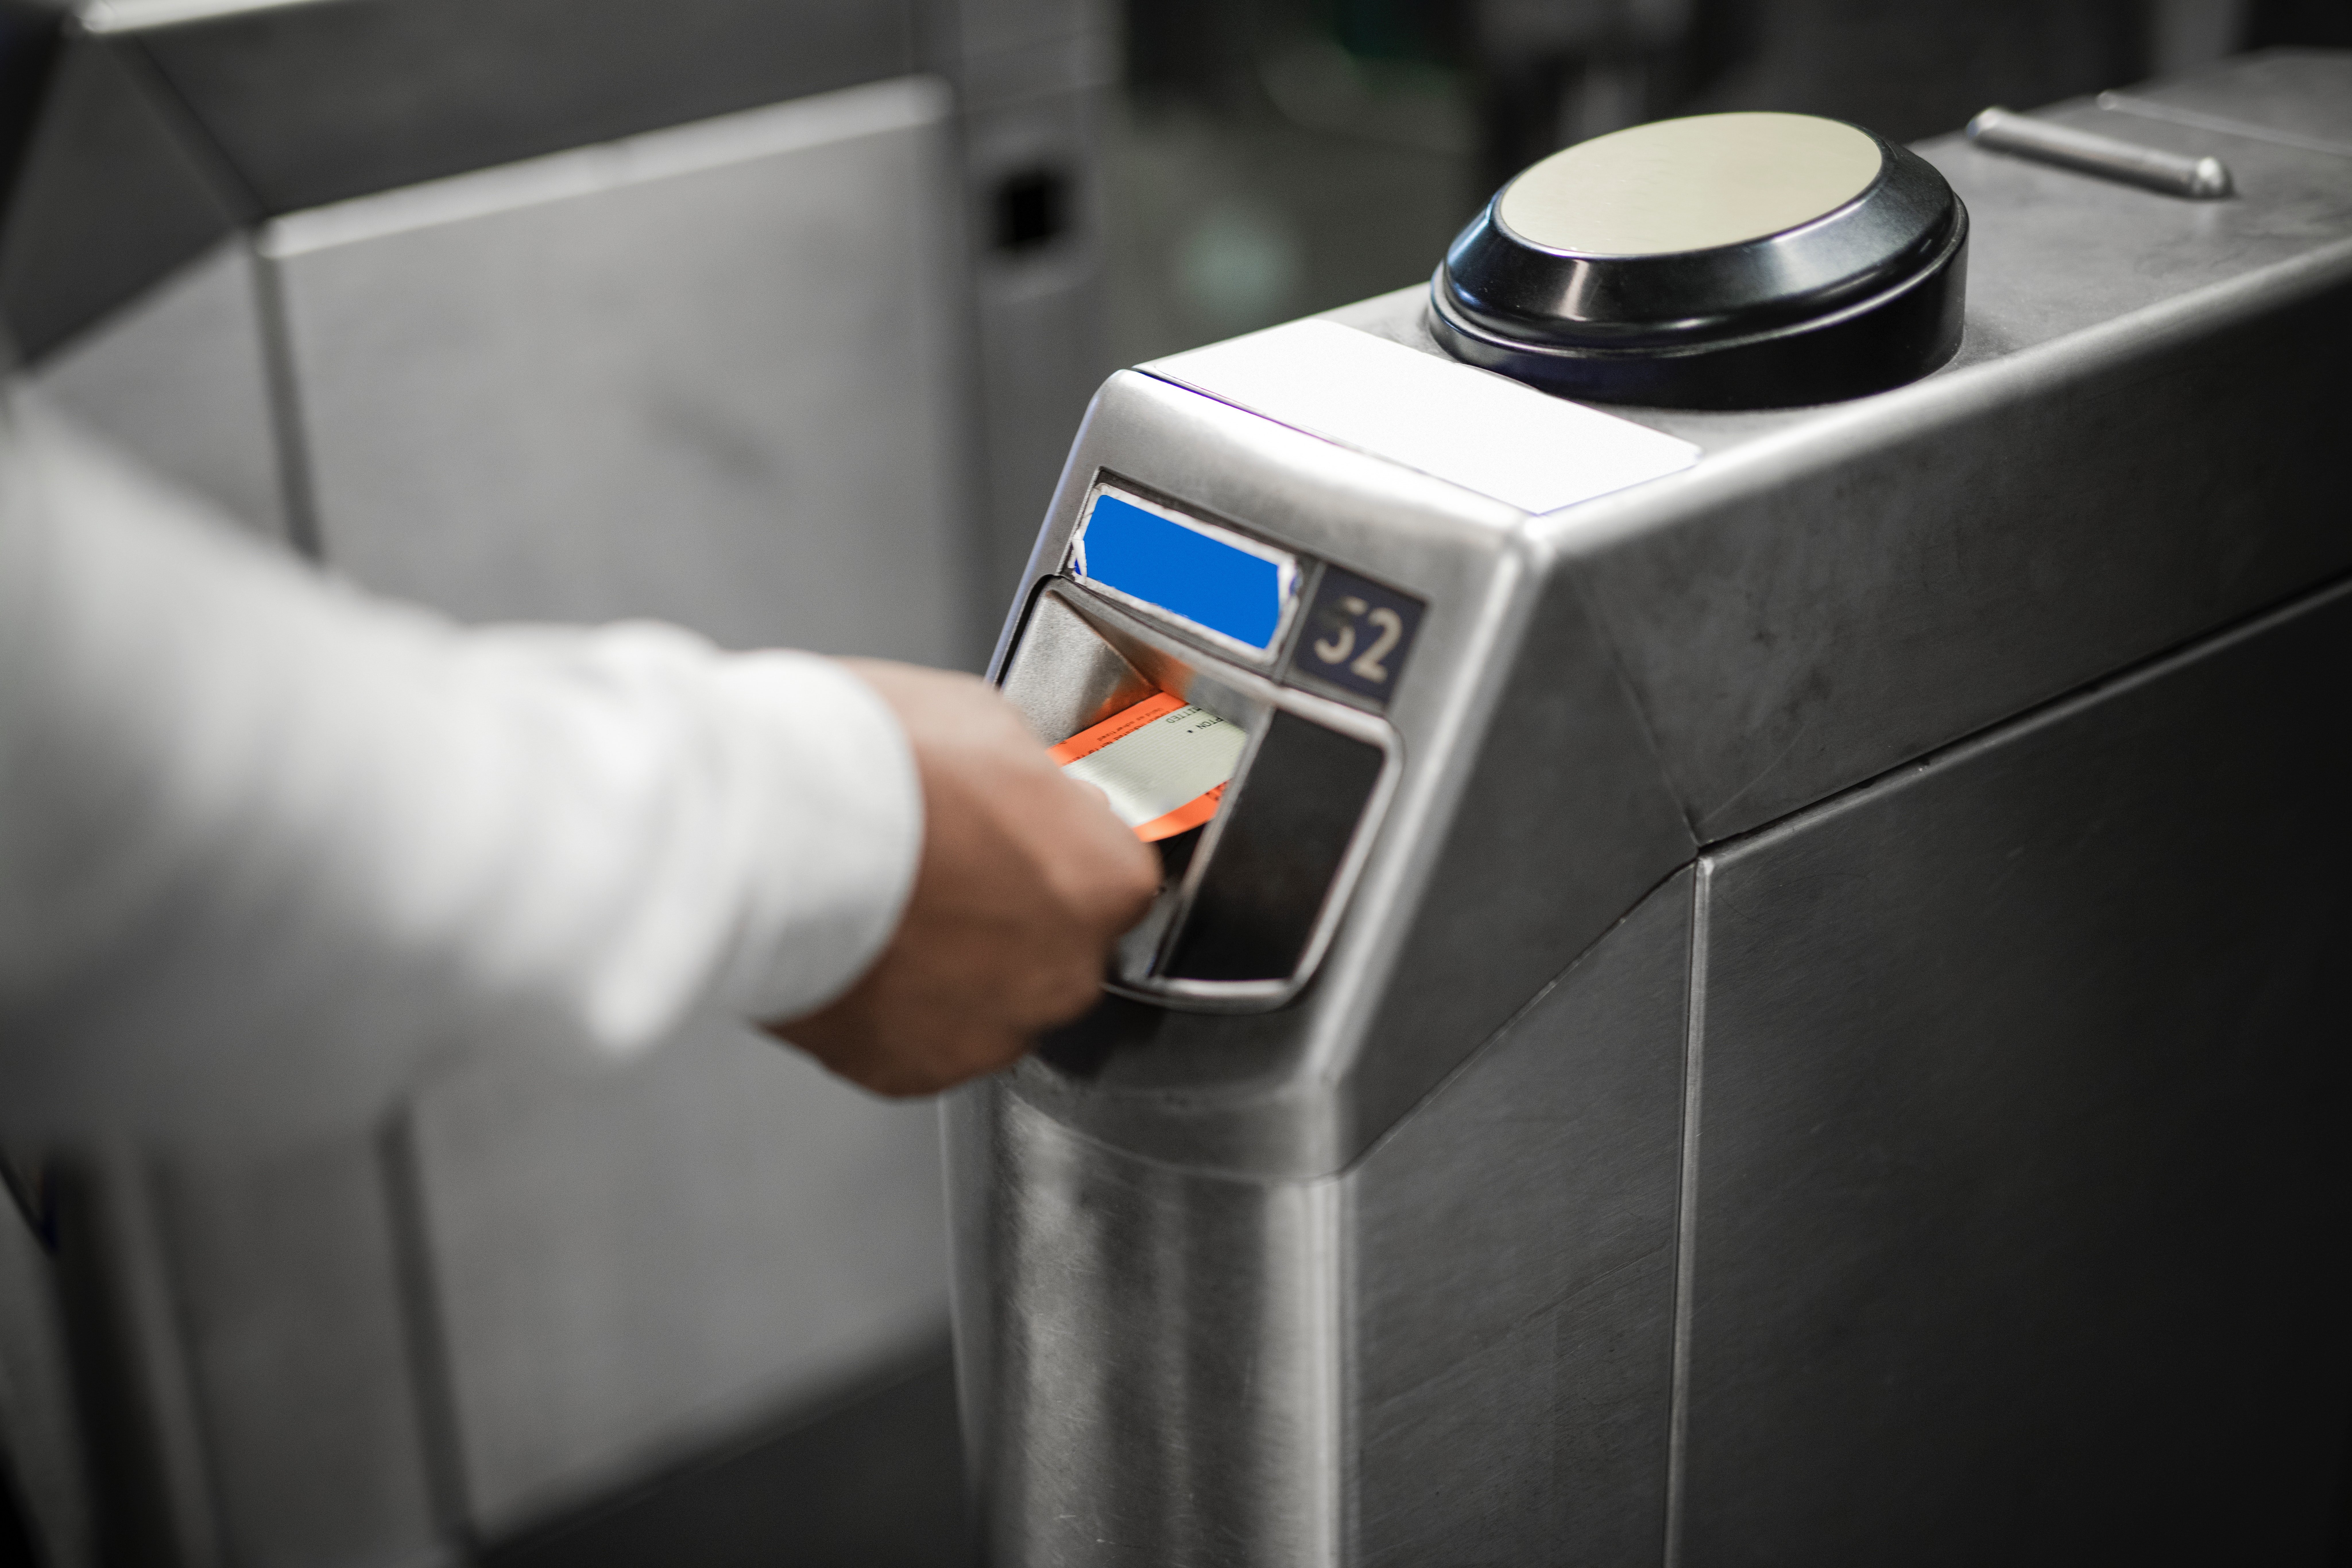 Smart Gates The Function of Turnstile Systems in the Philippines